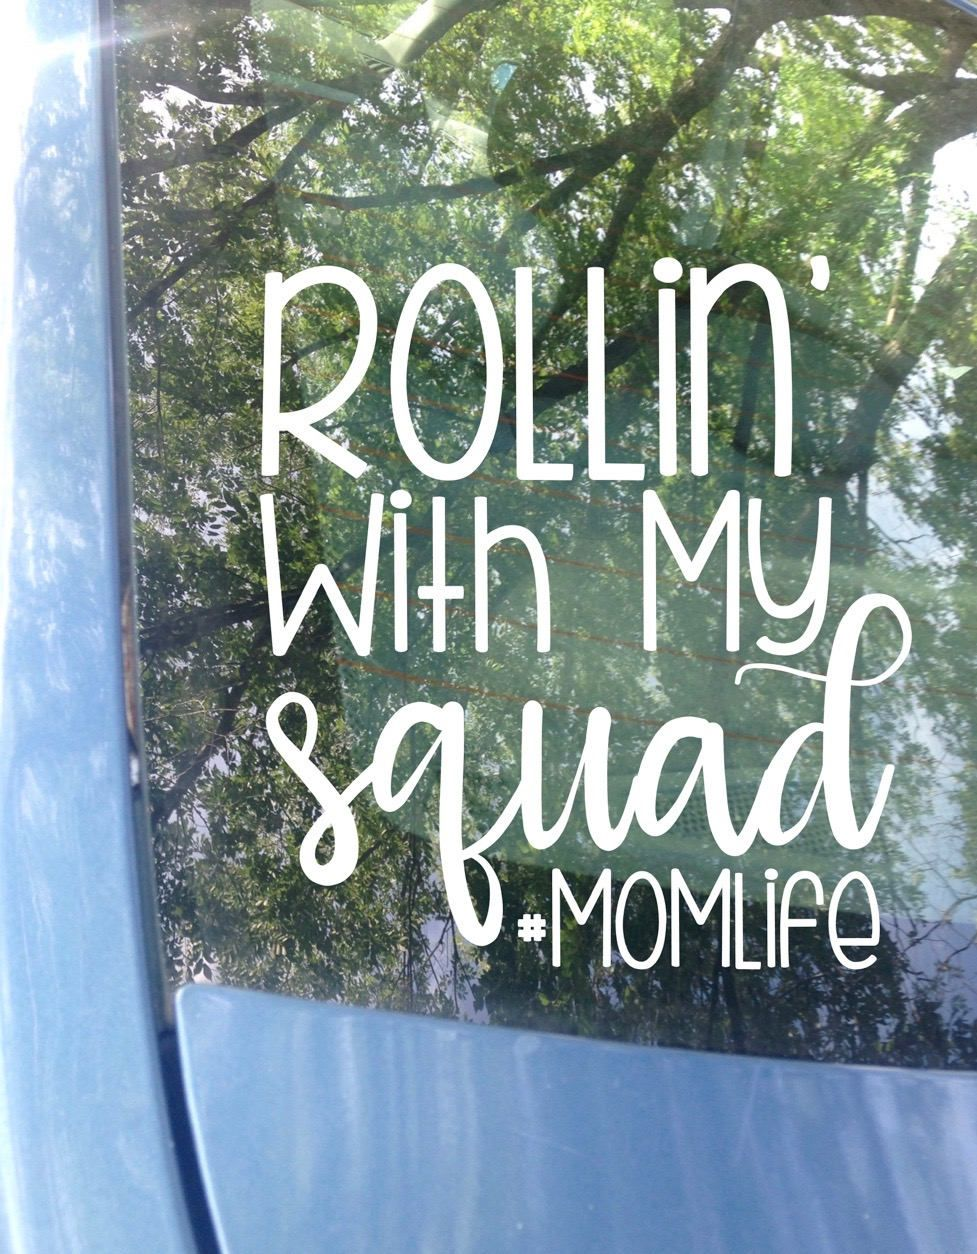 Mom life decal van decal rollin with my squad momlife funny decal van sticker mom decal mom sticker mom life mom gift by